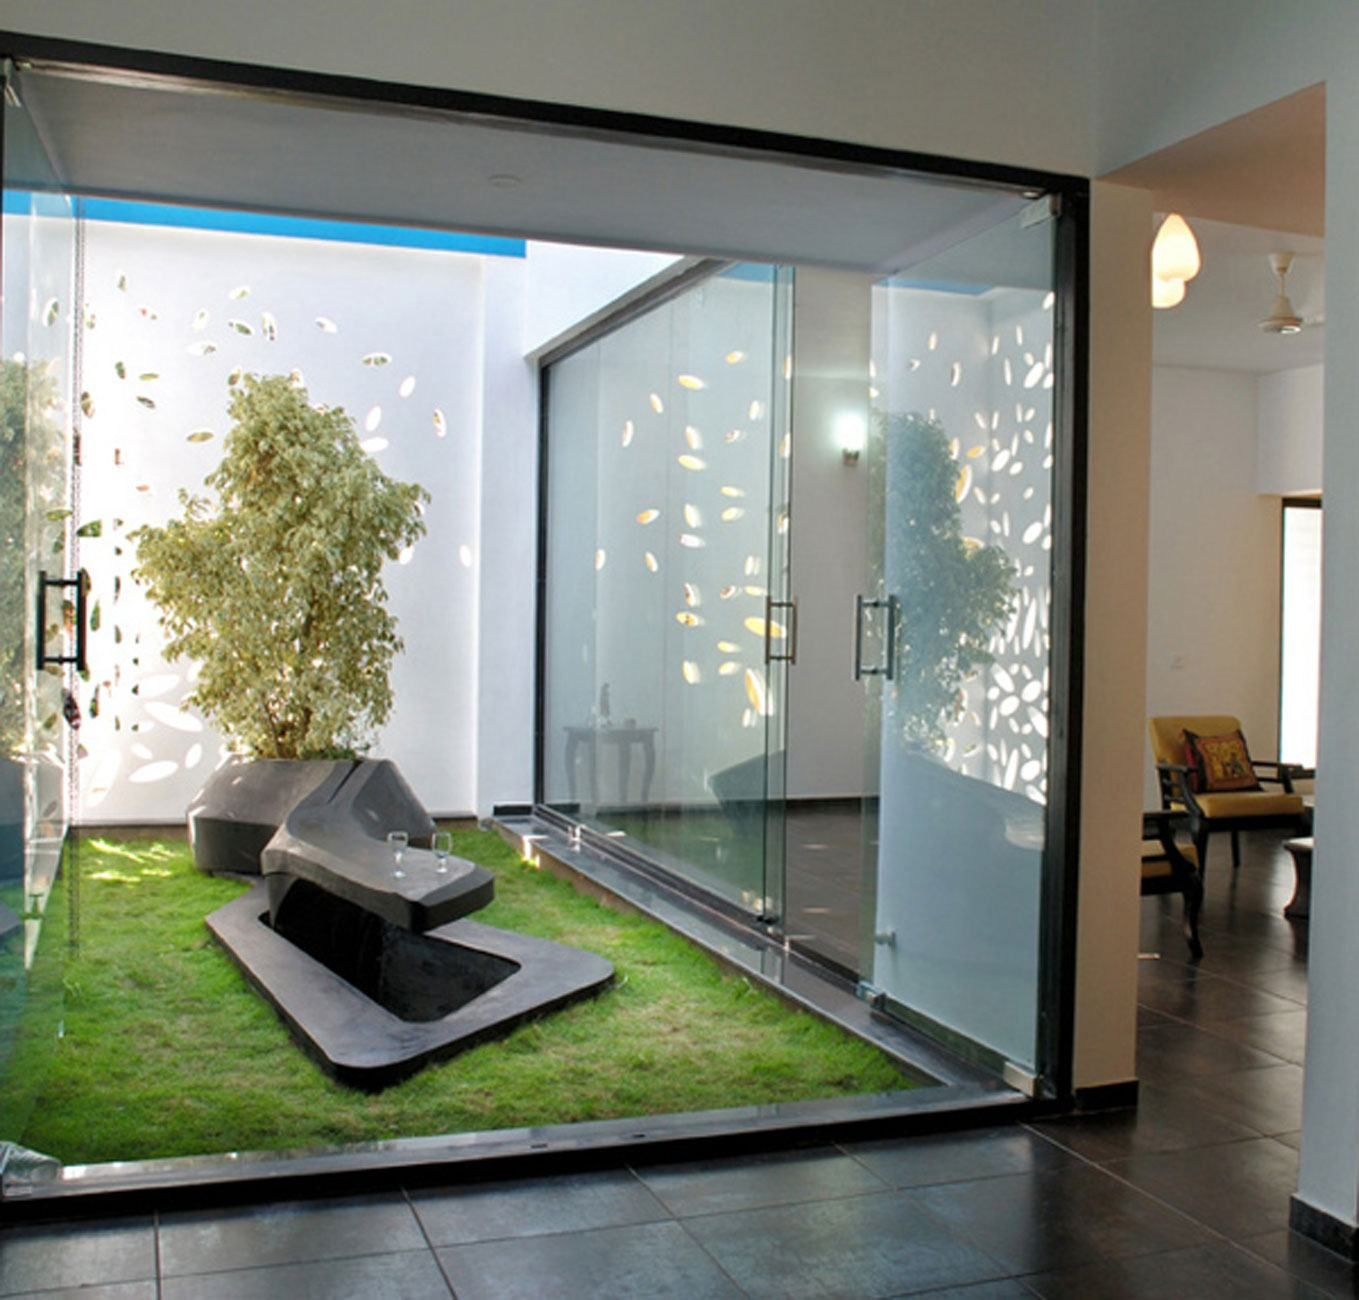 Home designs gallery amazing interior garden with modern for Home designs with garden